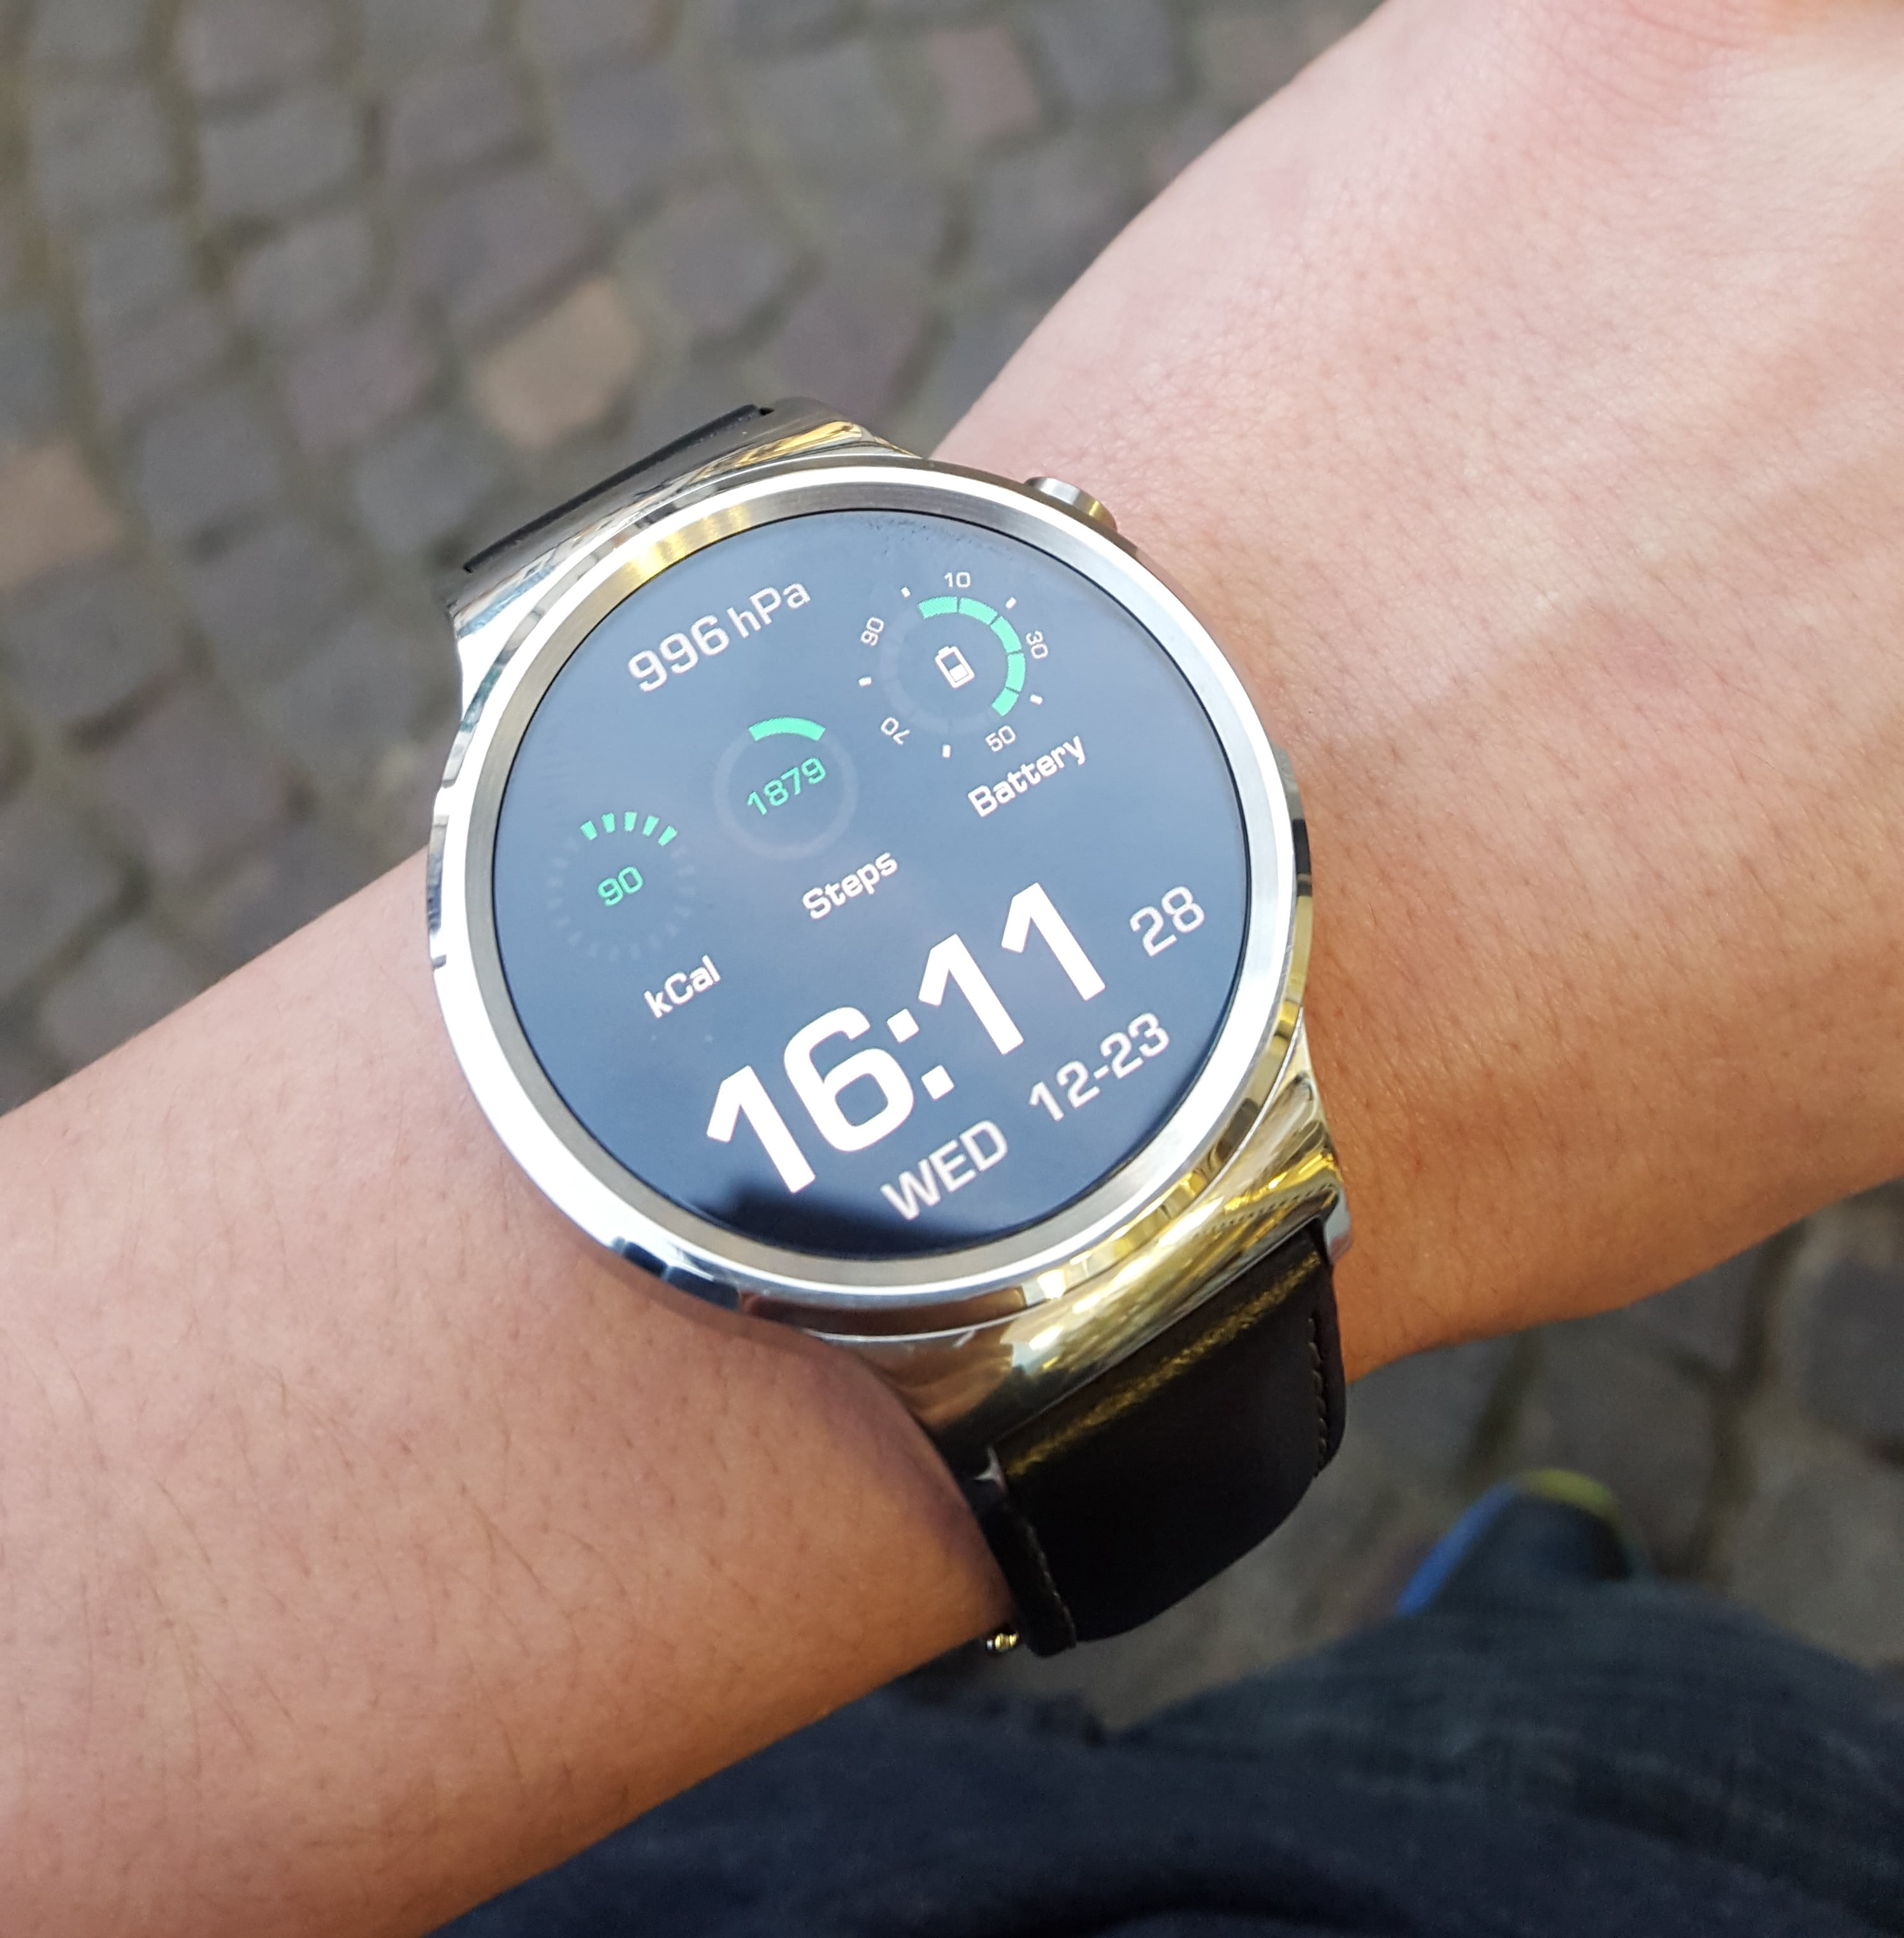 Photo of Die edle Huawei Watch im Test!